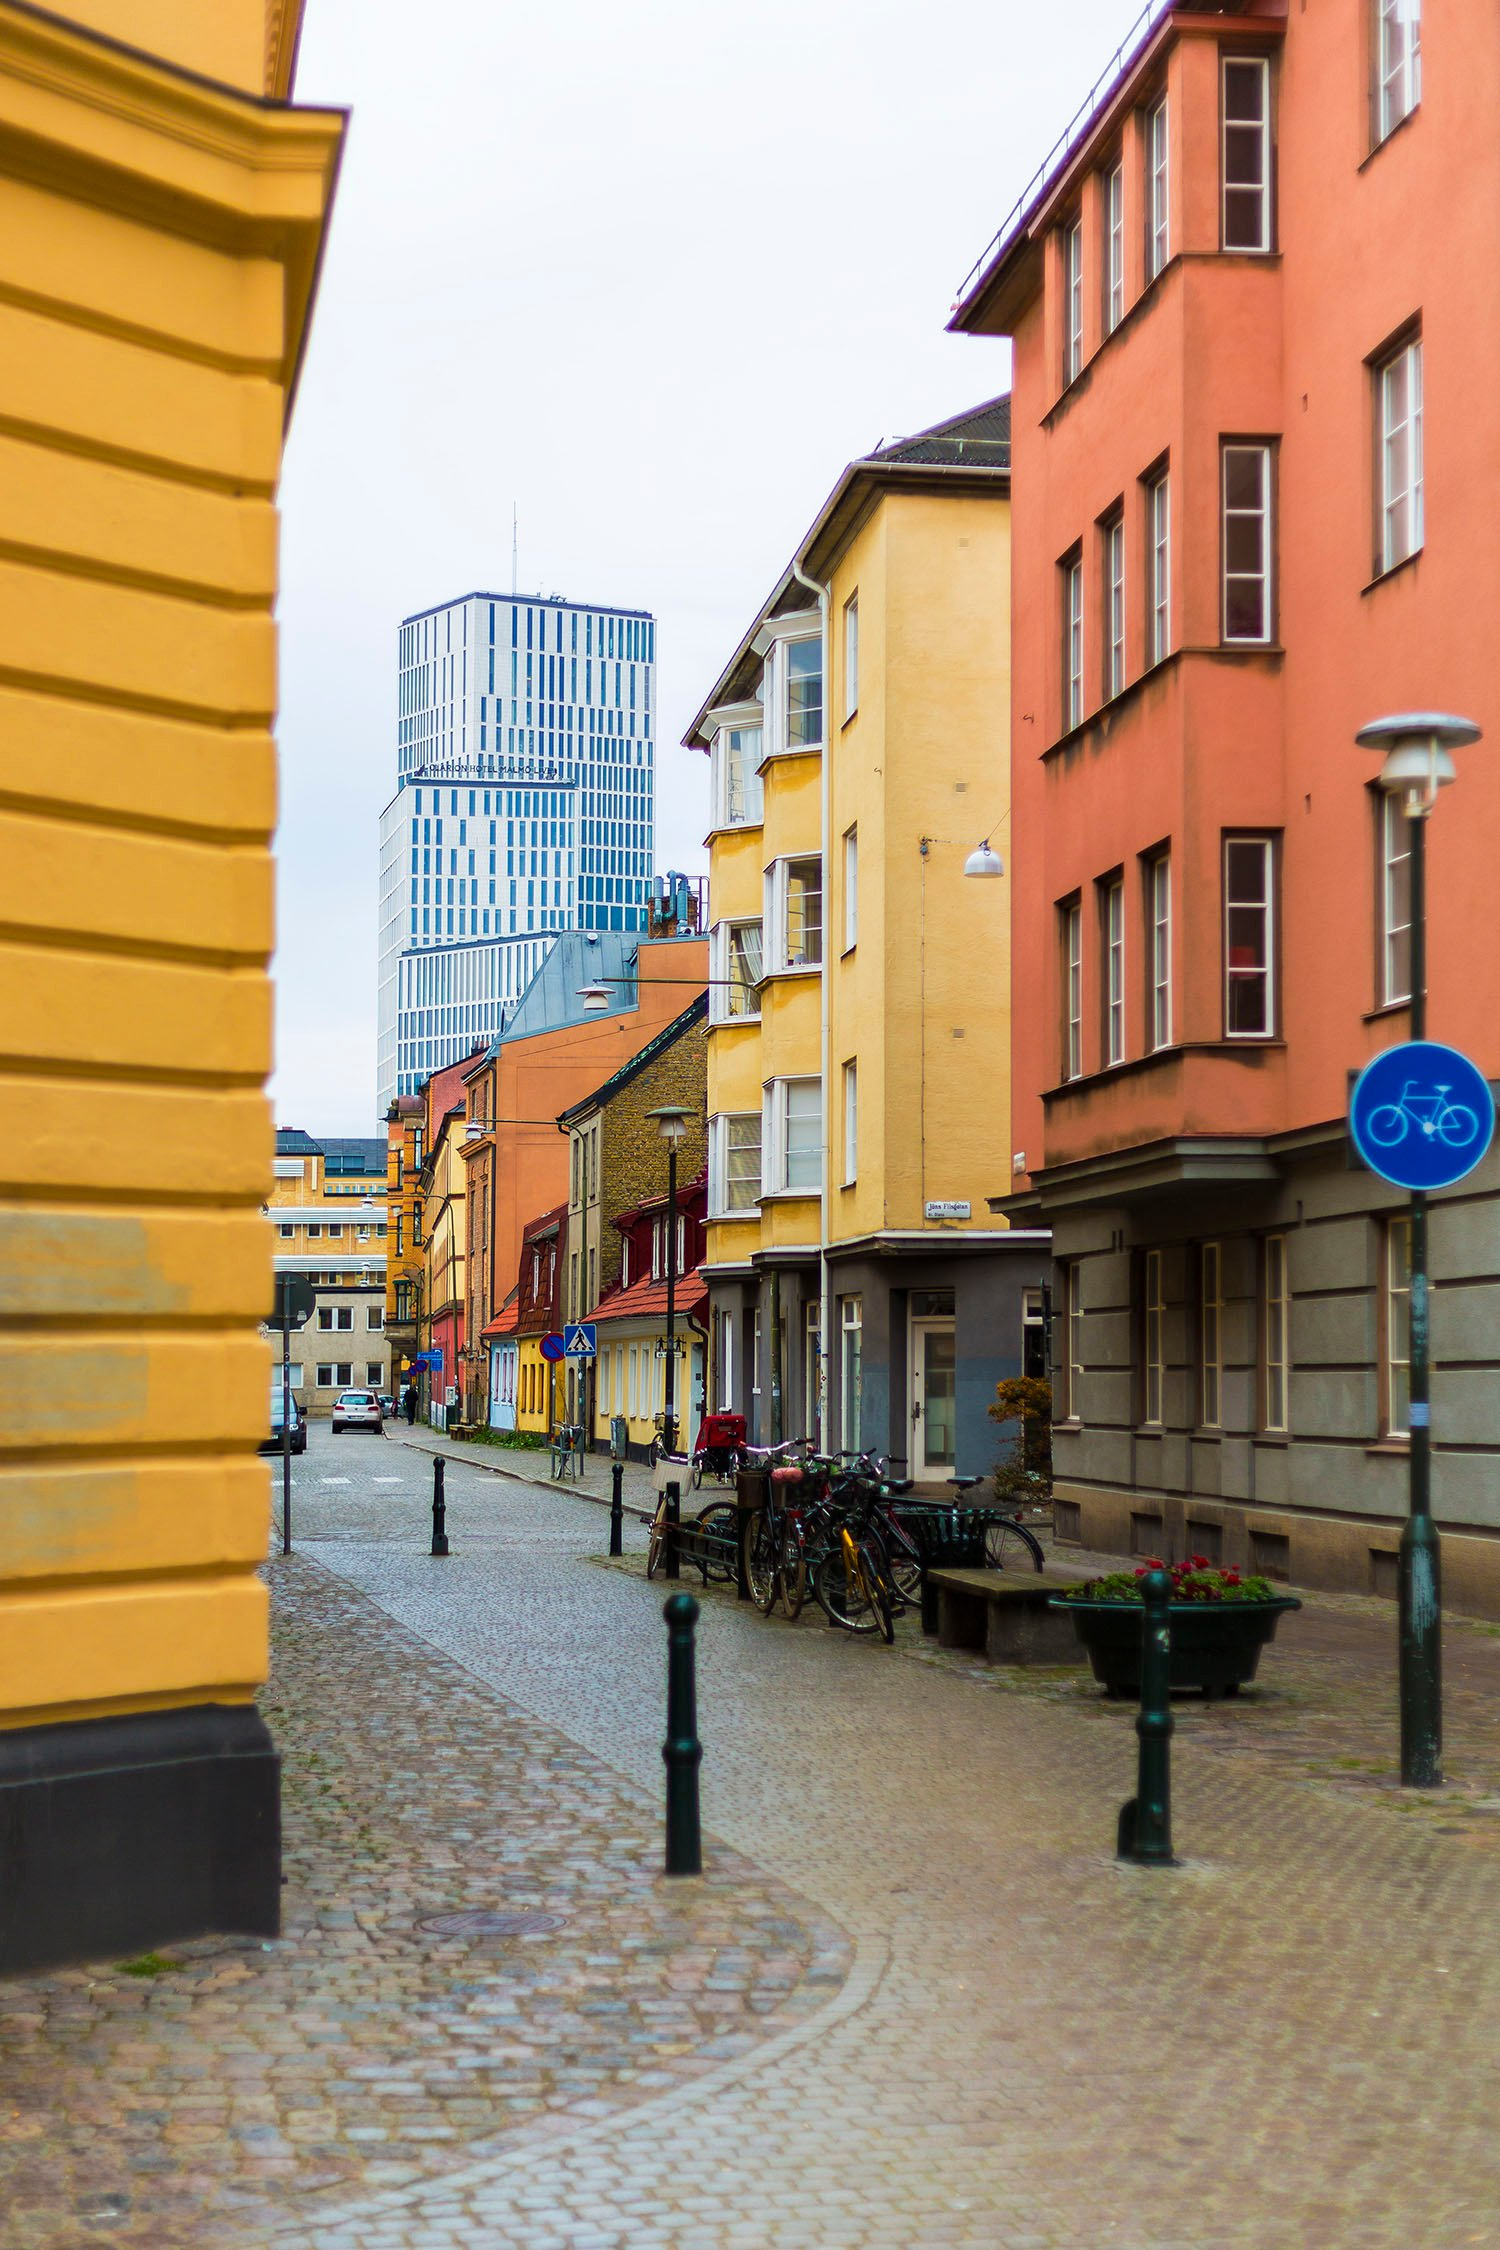 Malmö Live is becoming a focal point and landmark in Malmö